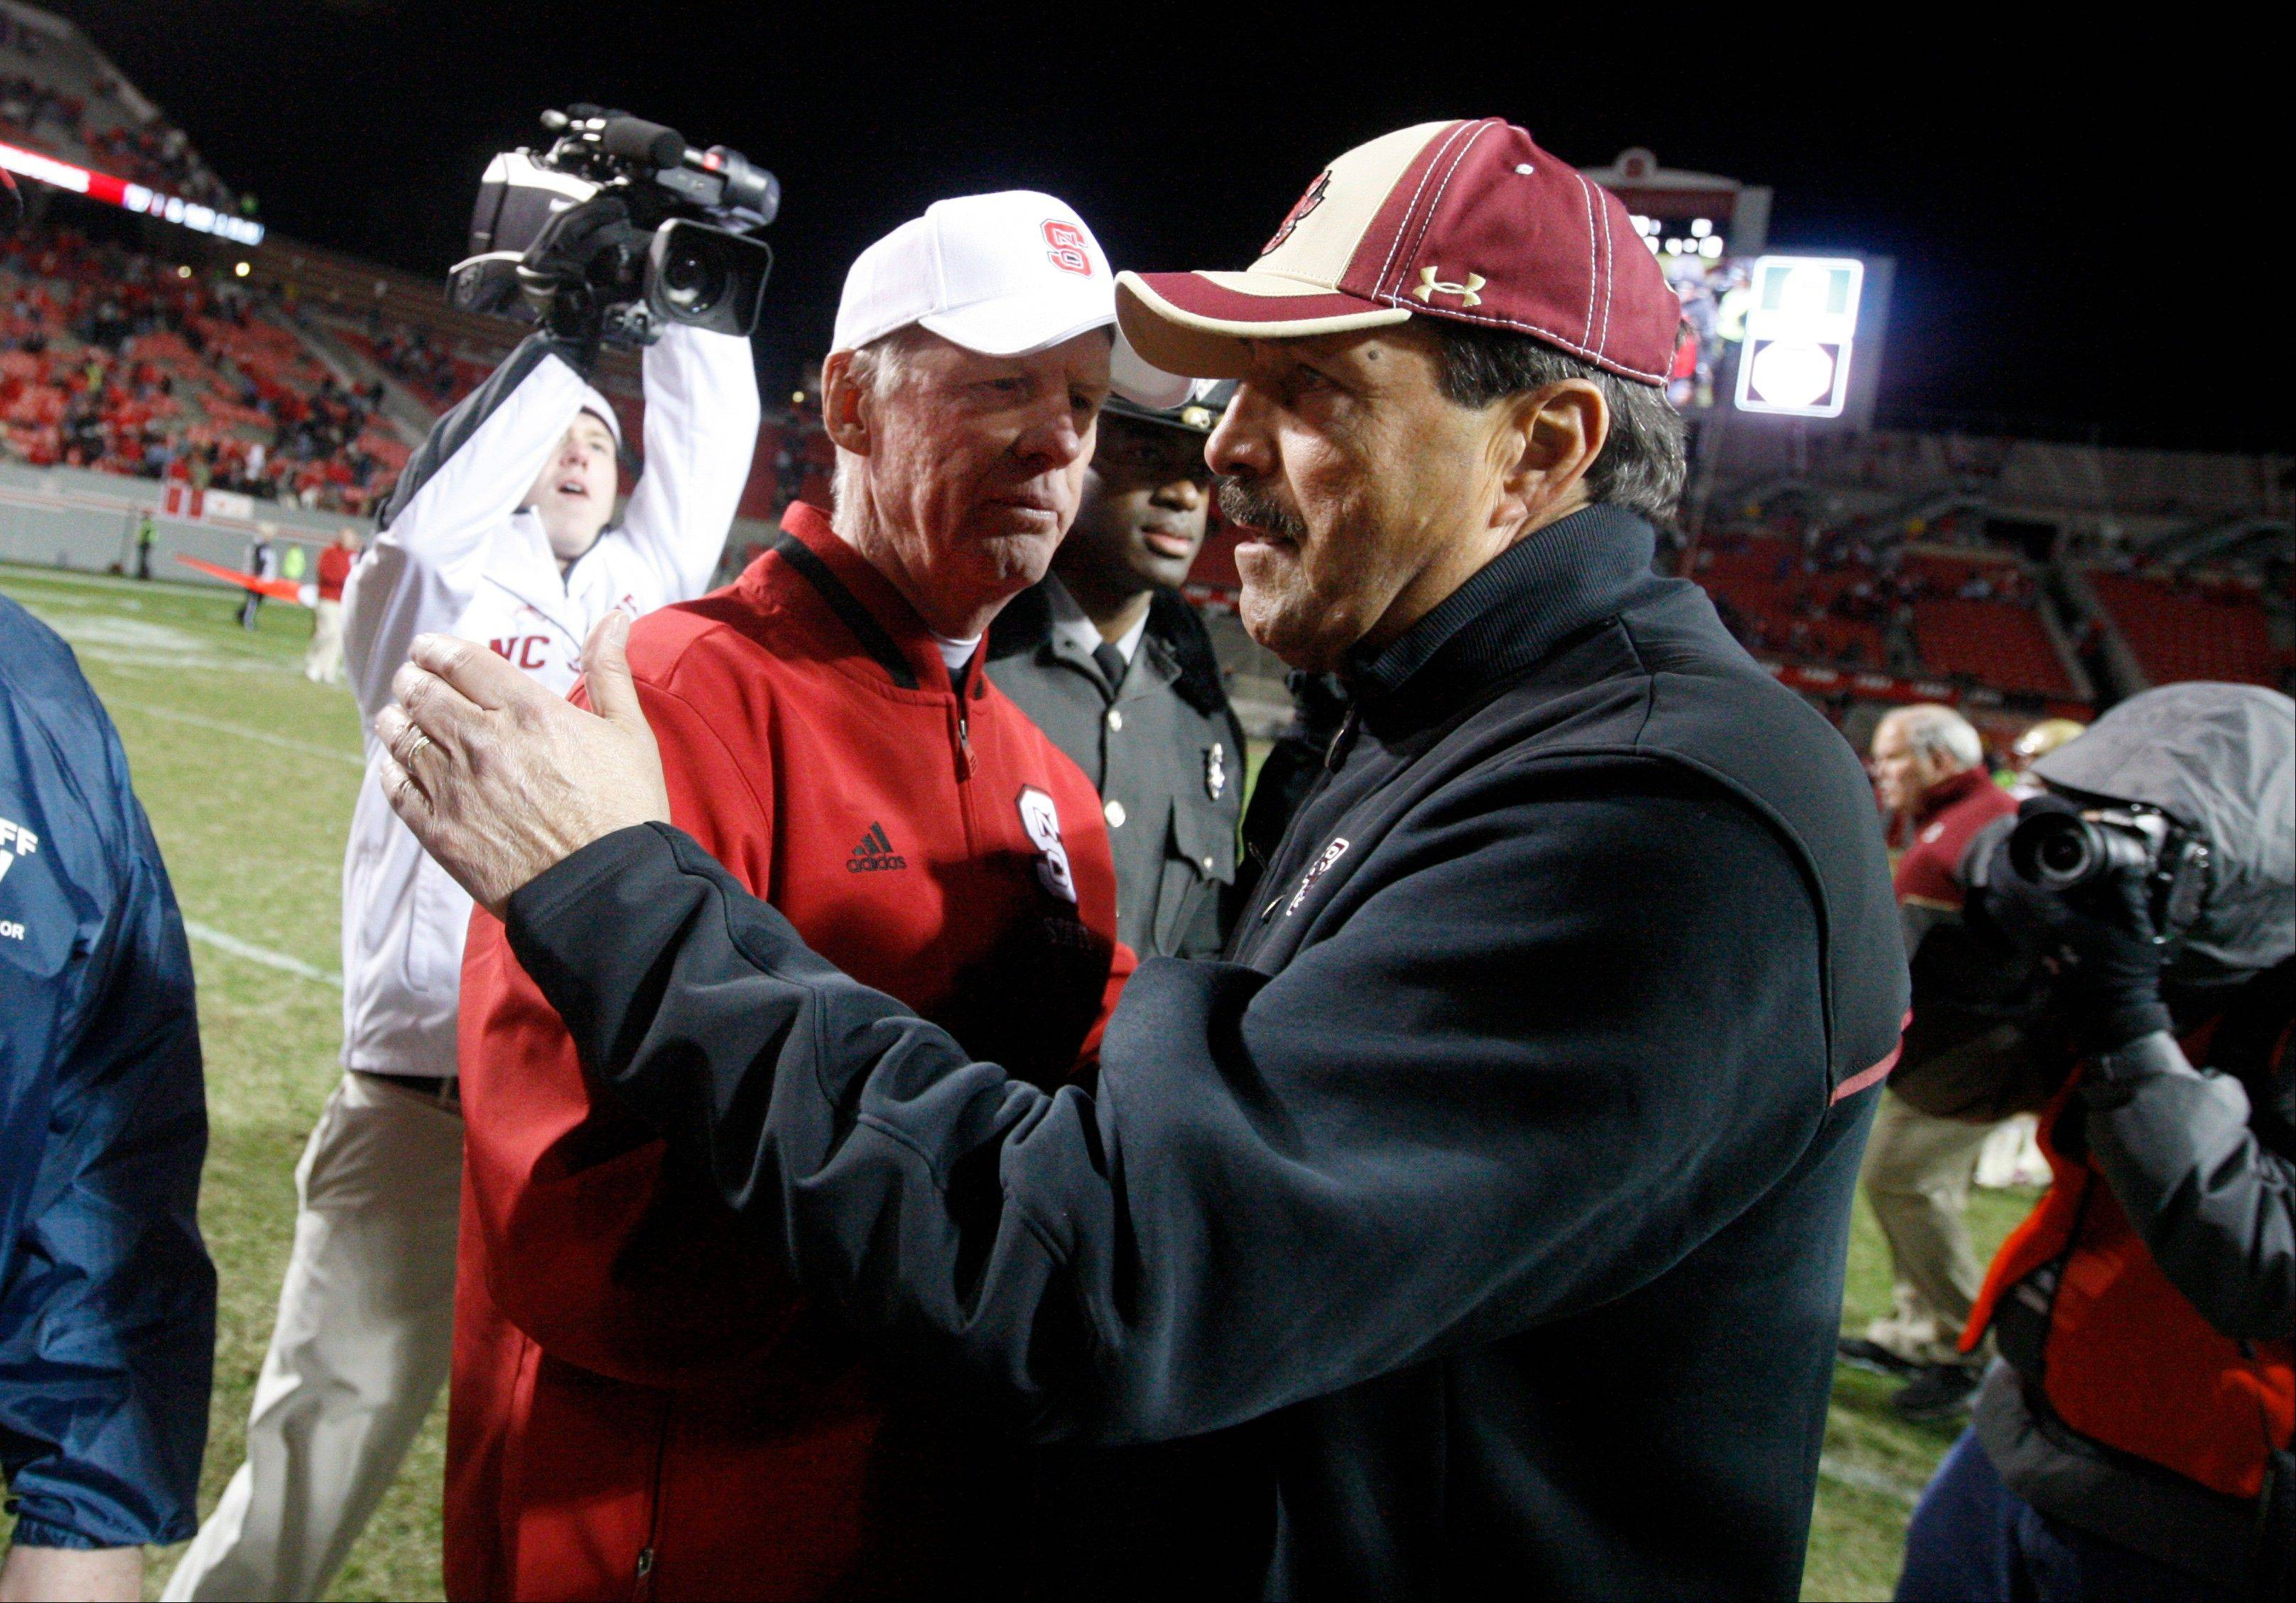 North Carolina State coach Tom O�Brien, left, greets Boston College coach Frank Spaziani after N.C. State�s 27-10 victory on Saturday. Both coaches lost their jobs Sunday.